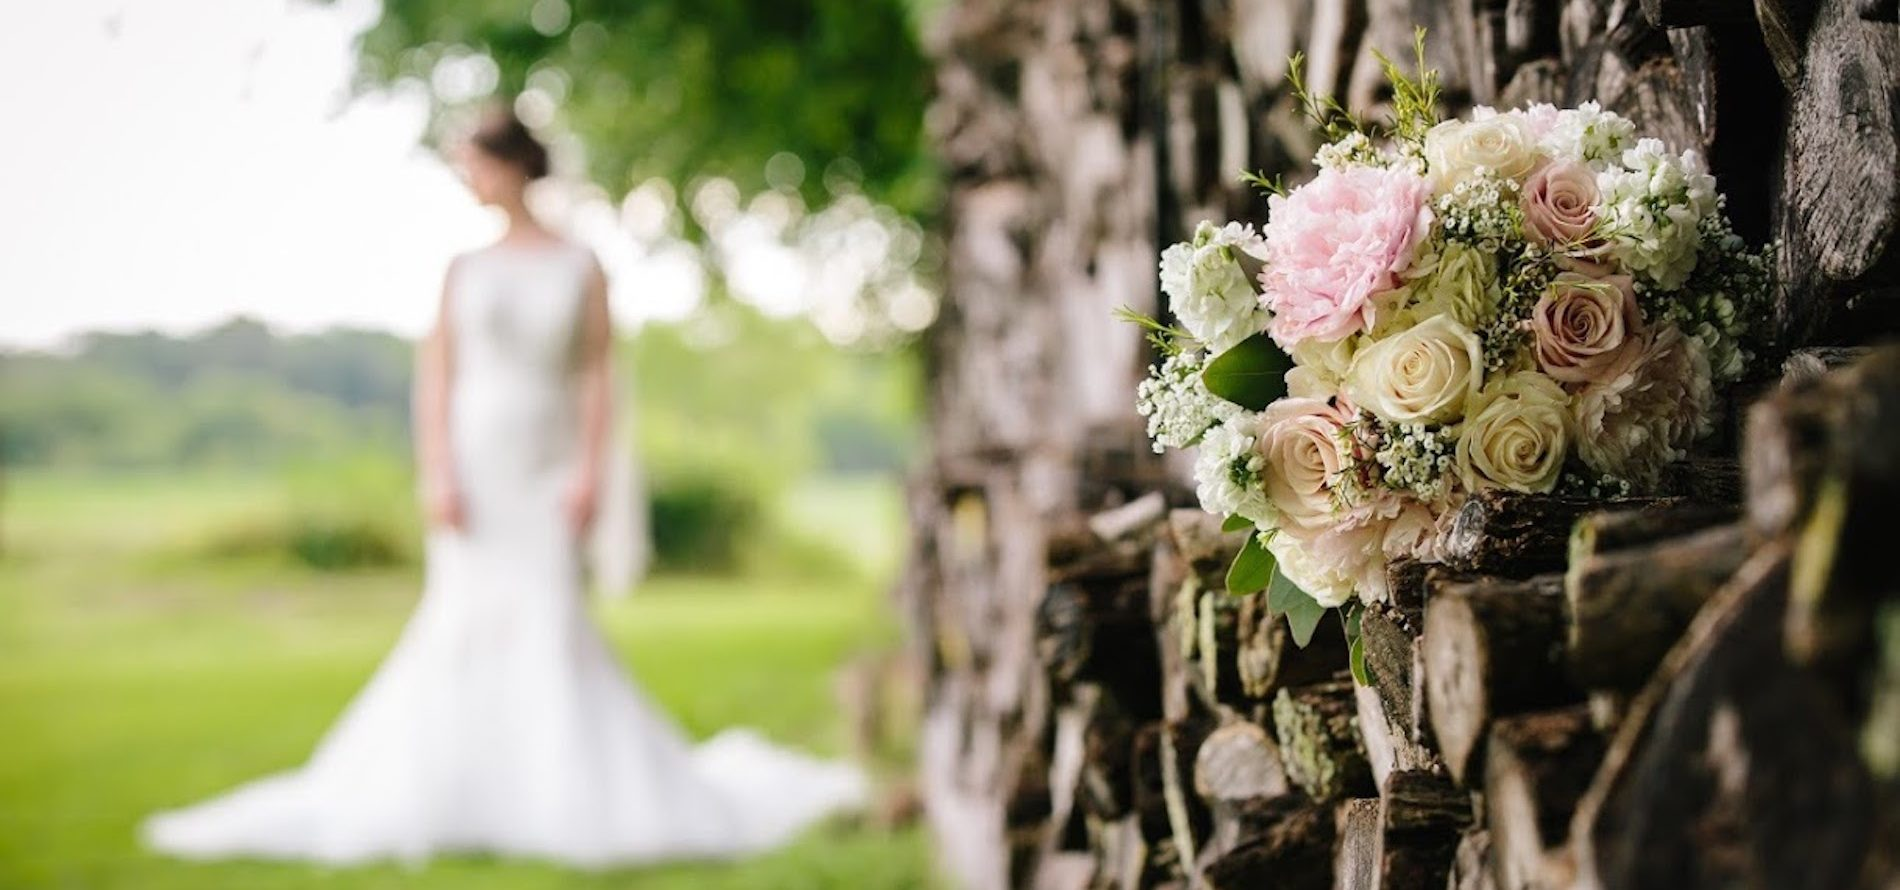 Flowers with Bride in the Background